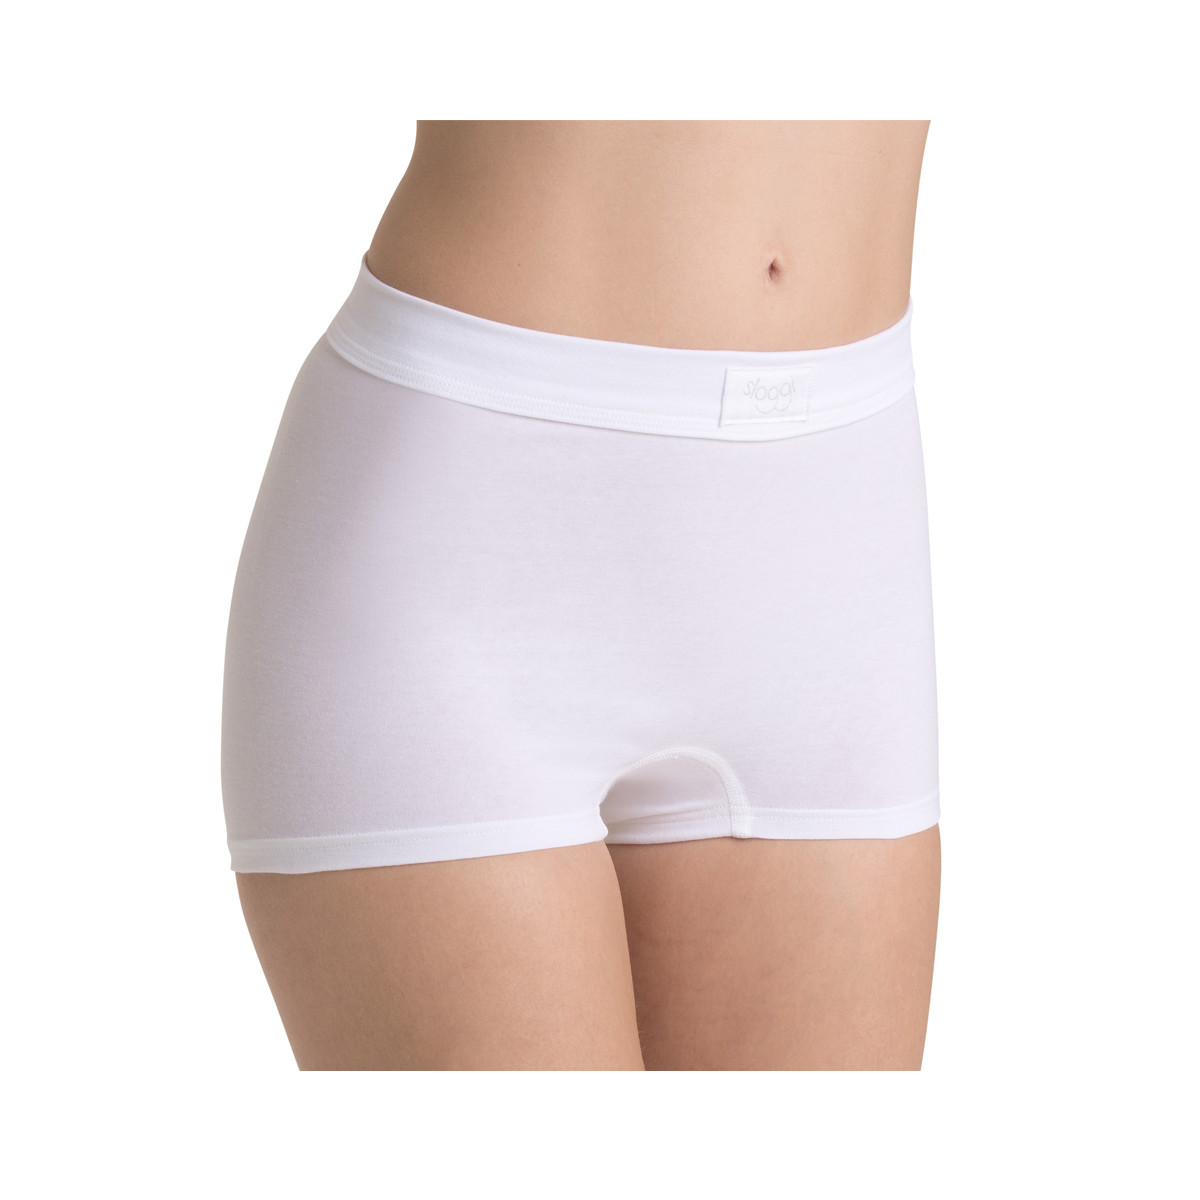 Sloggi Double Comfort Shorts 10022496